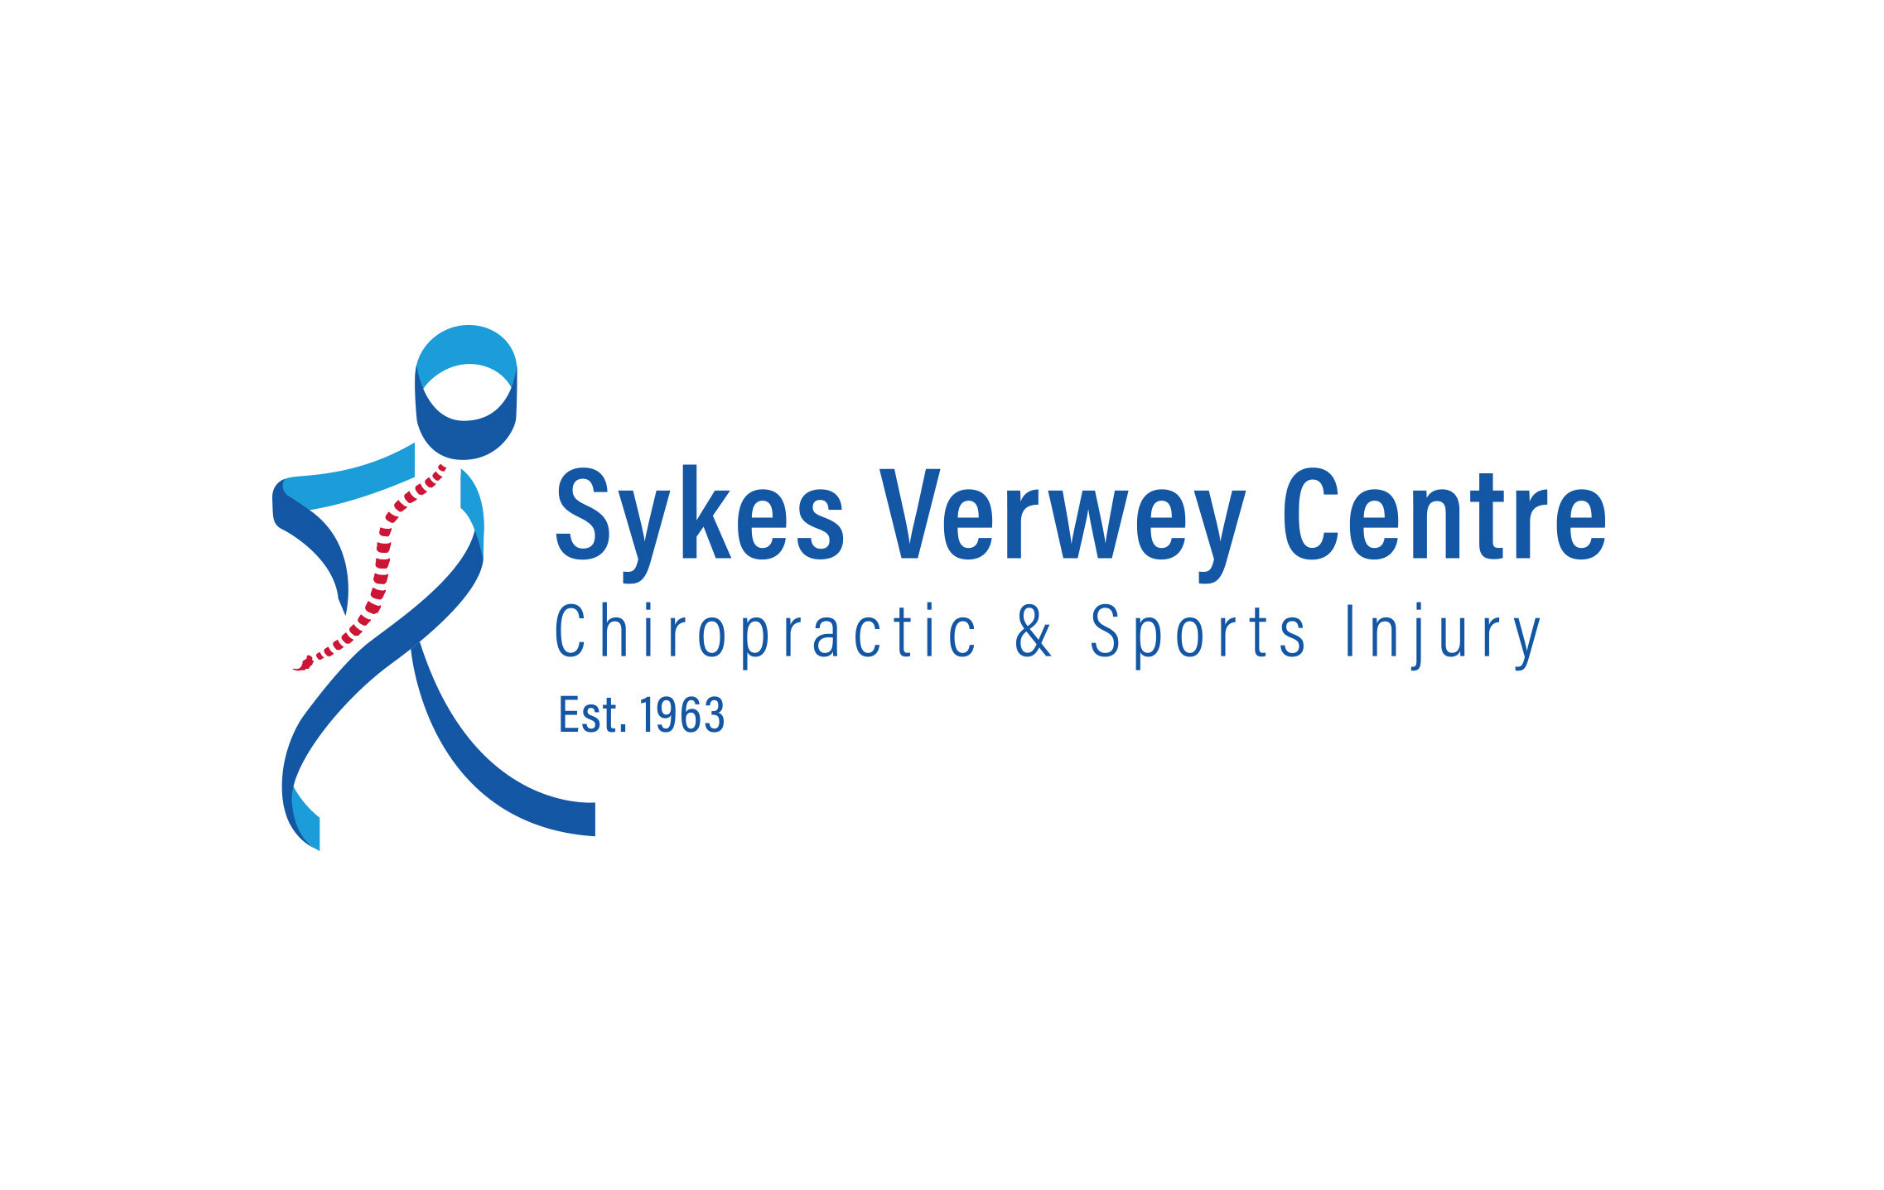 Chiropractor in newton abbot, sykes verwey centre. back pain, neck pain, sports injury, shoulder pain, knee pain